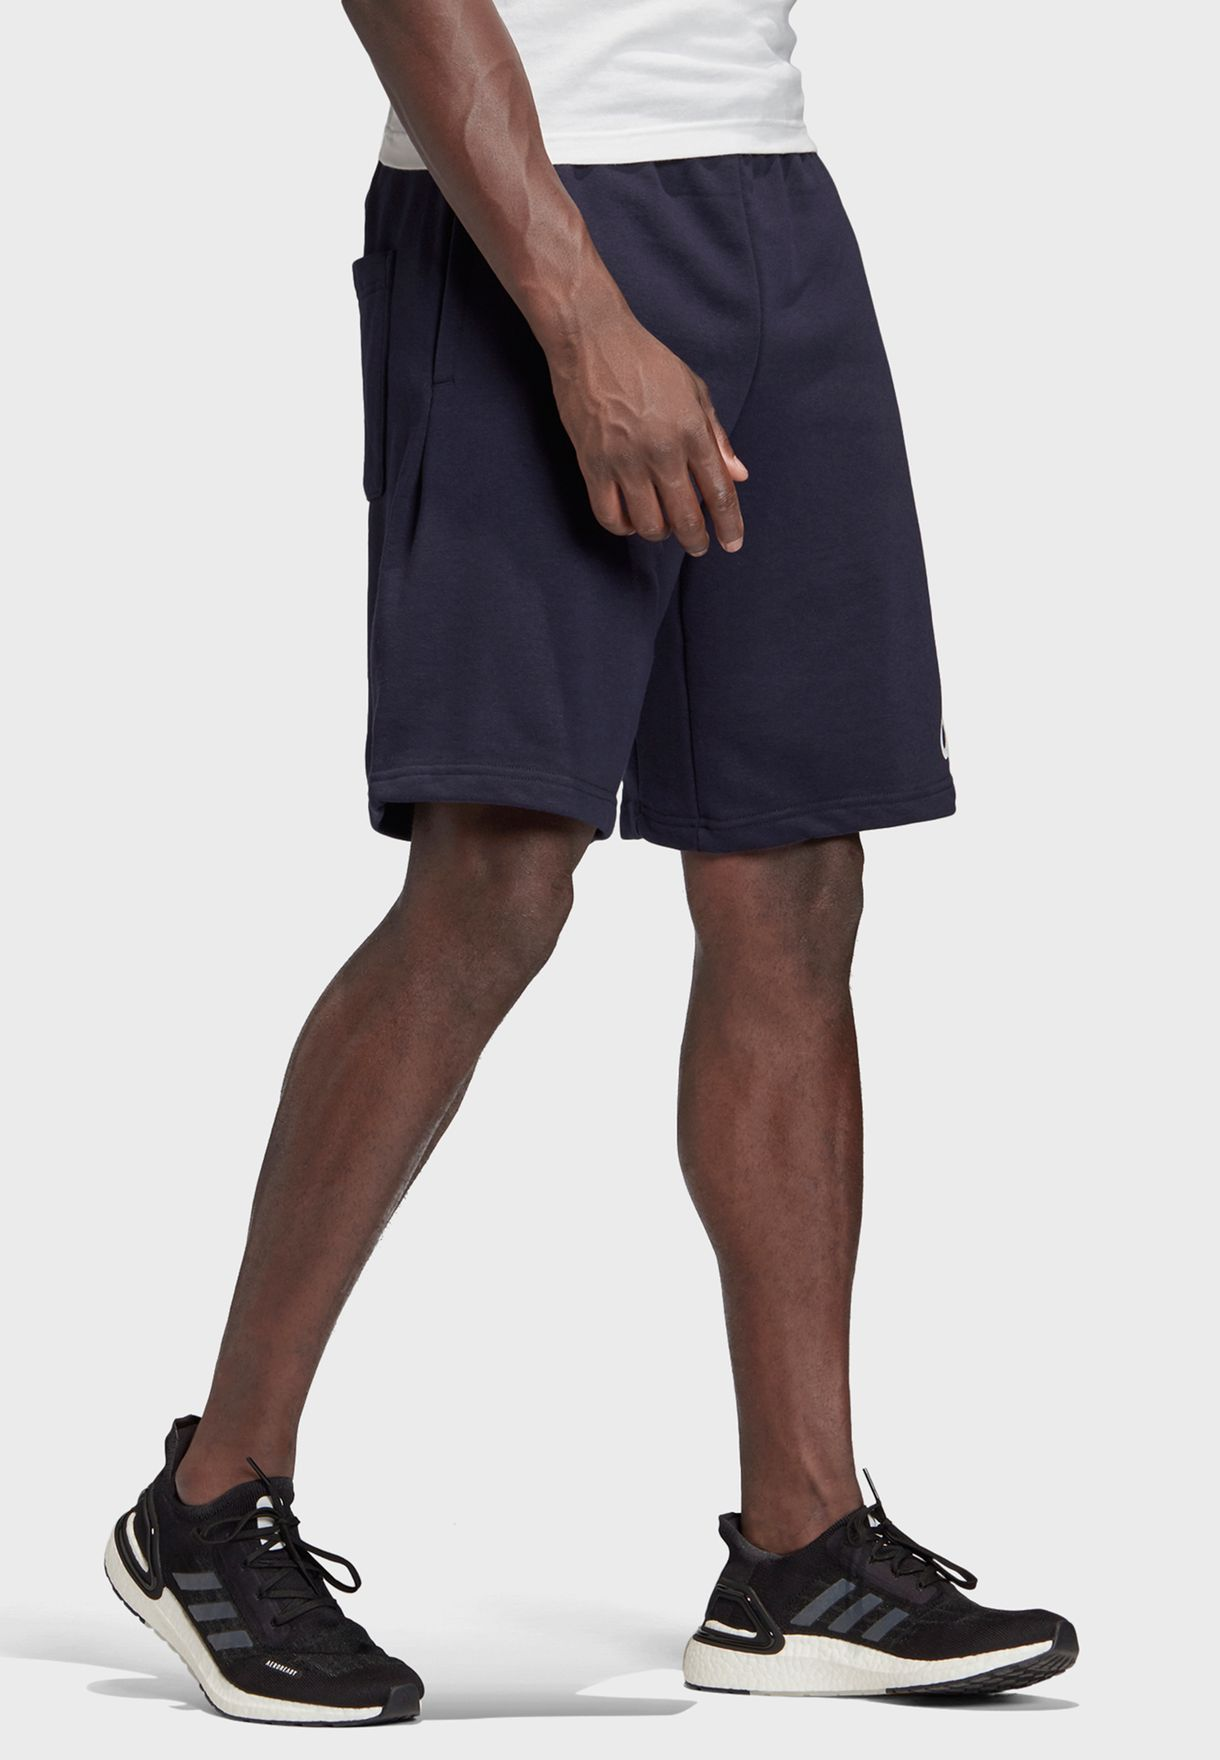 Must Have BOS Shorts